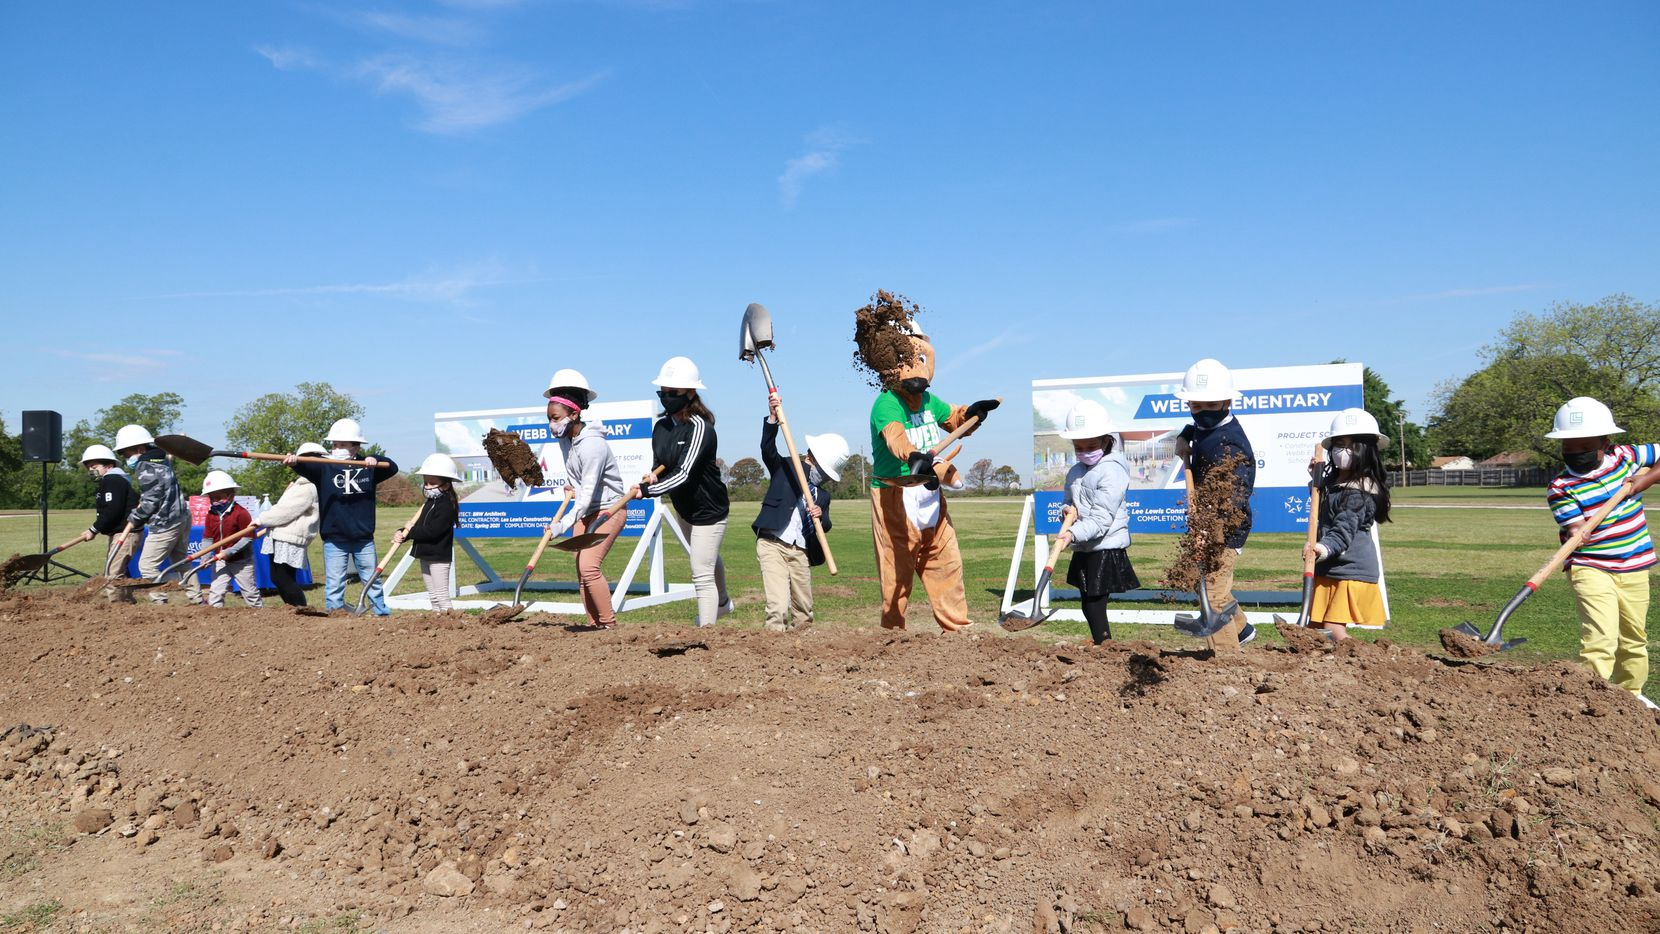 Students at Webb Elementary participated in a ceremonial groundbreaking for their new school.